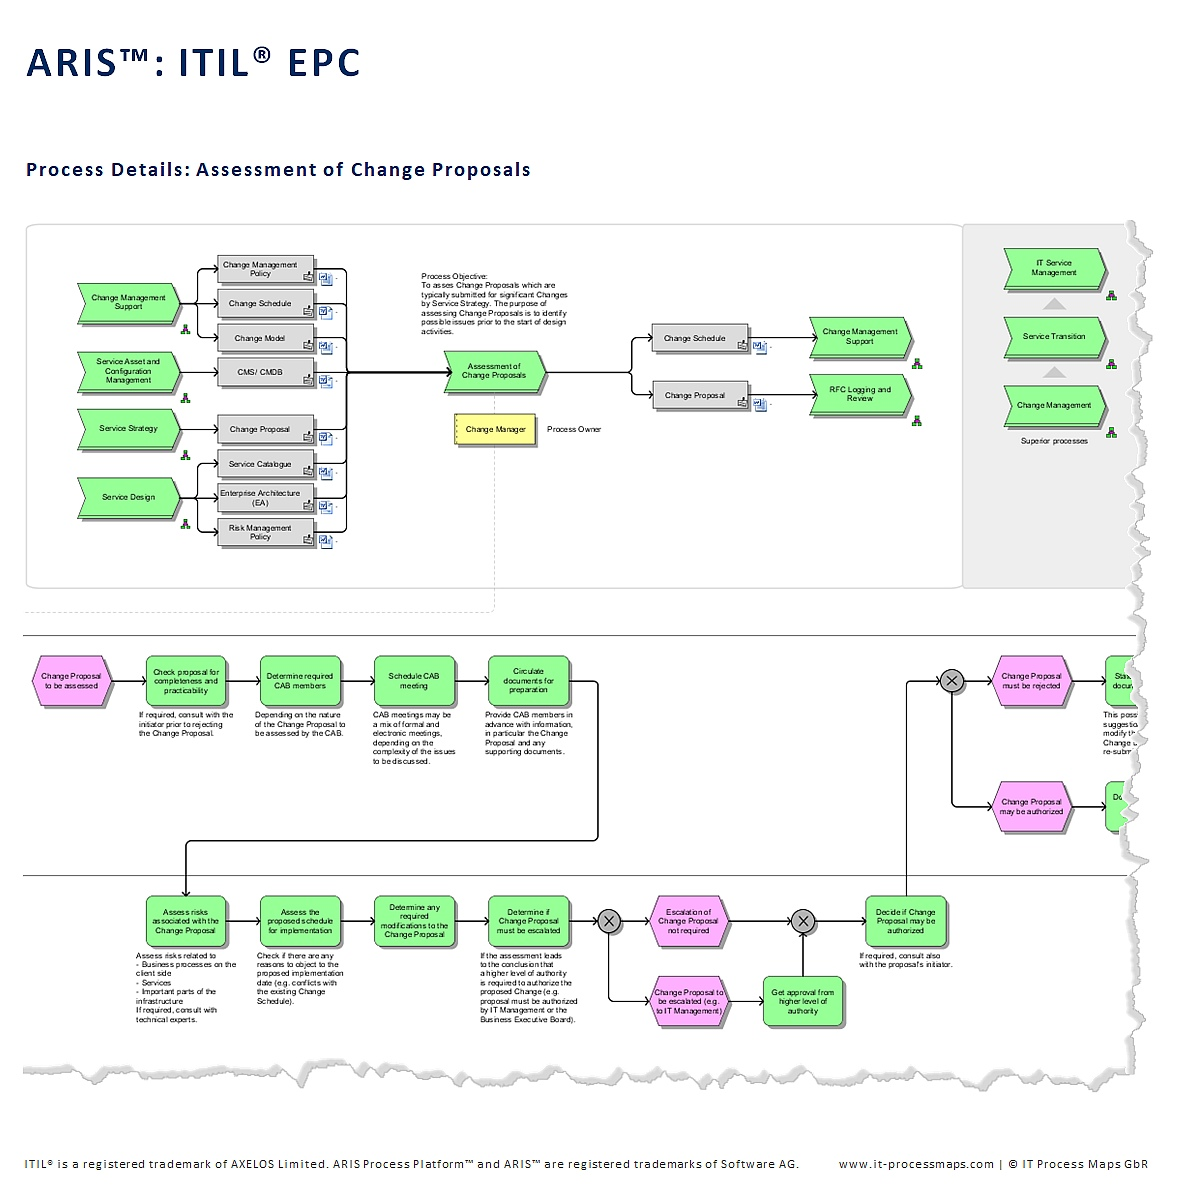 Itil process map for aris aris itil malvernweather Gallery